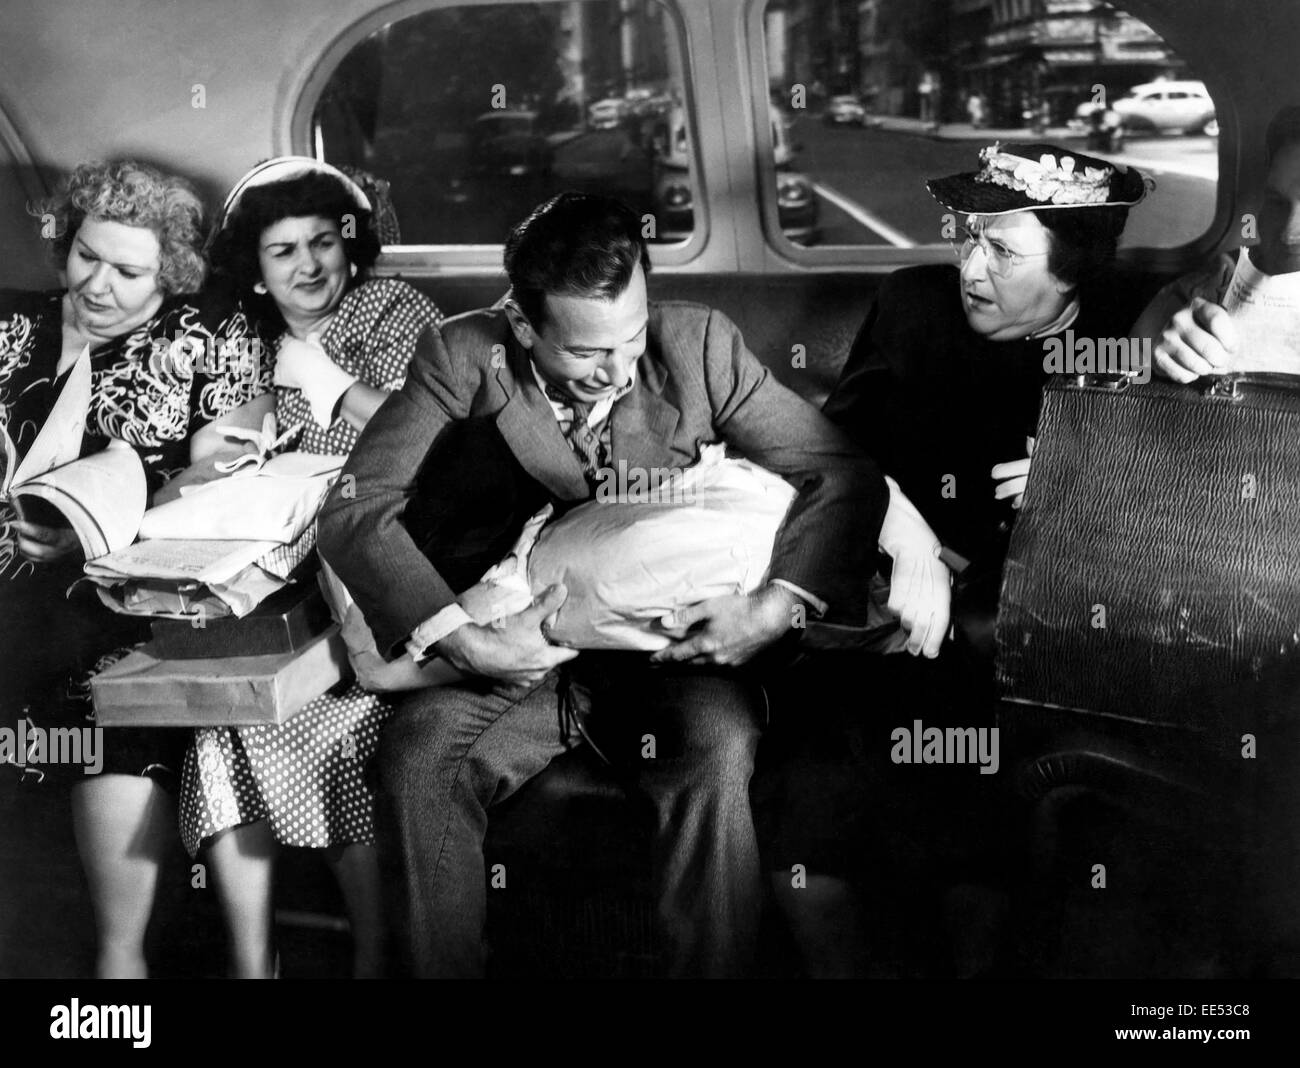 Jose Ferrer, Minerva Urecal, (right), on-set of the Film, 'Anything Can Happen', 1952 - Stock Image